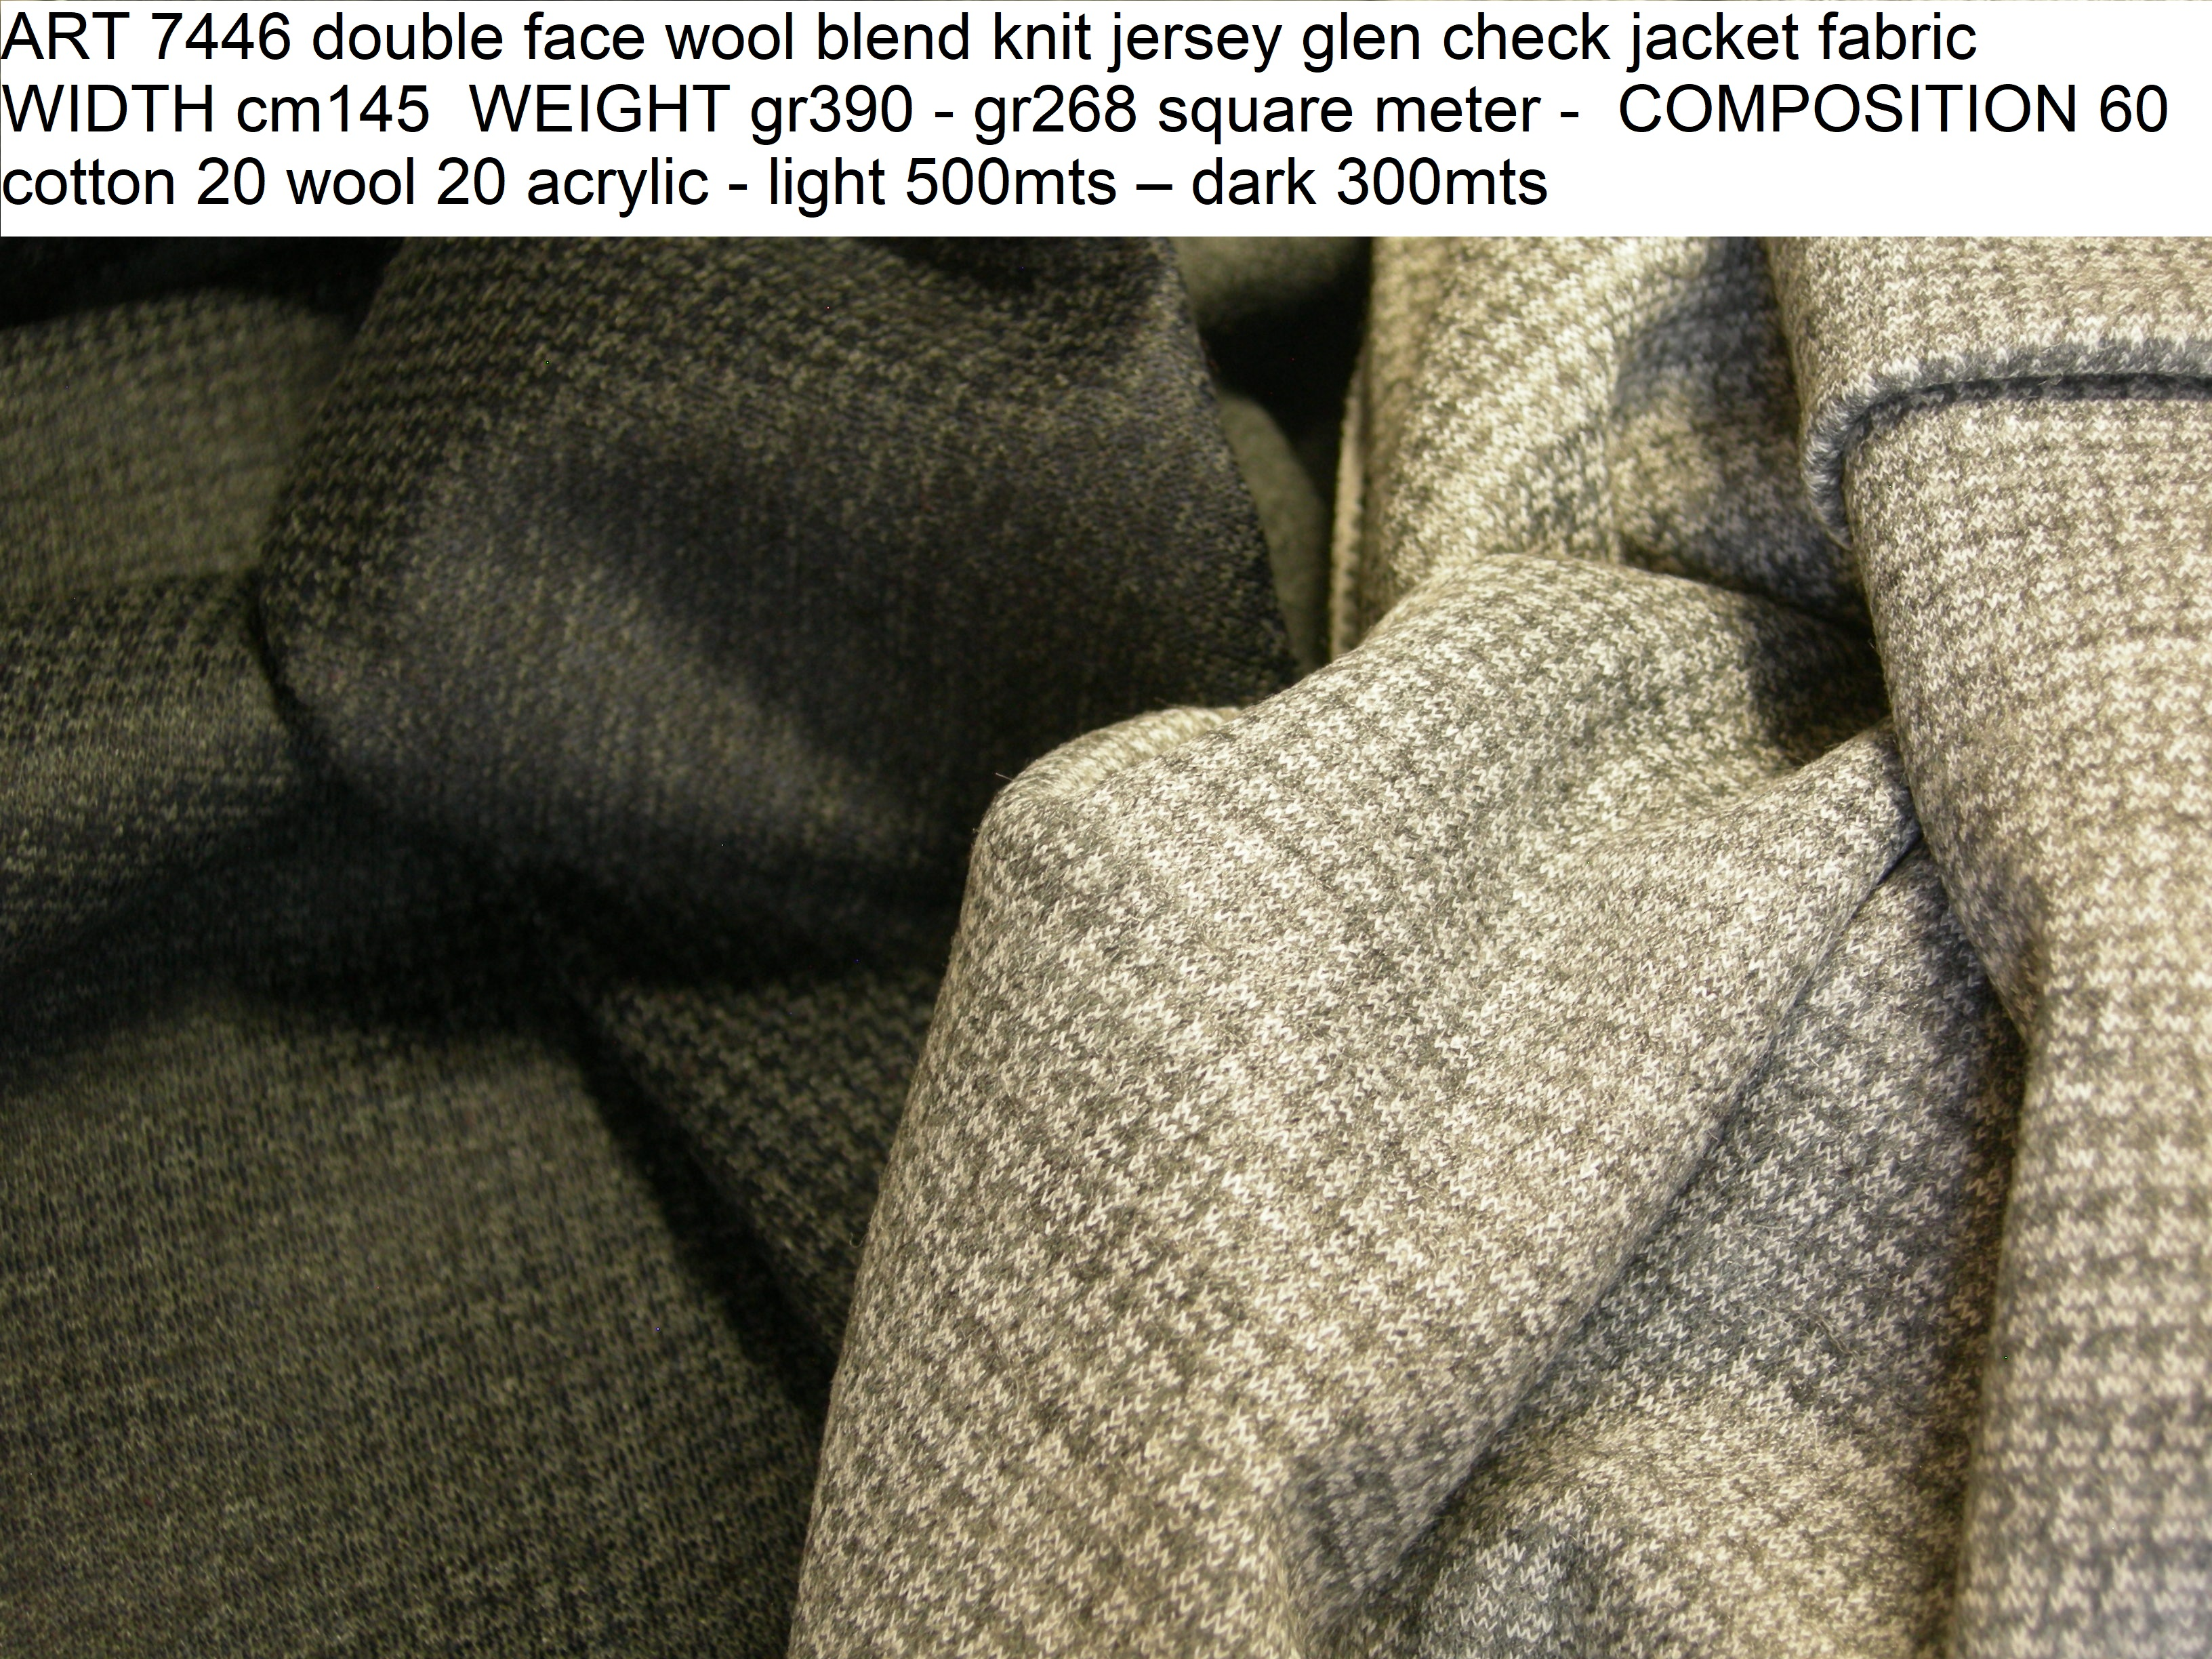 ART 7446 double face wool blend knit jersey glen check jacket fabric WIDTH cm145 WEIGHT gr390 - gr268 square meter - COMPOSITION 60 cotton 20 wool 20 acrylic - light 500mts – dark 300mts